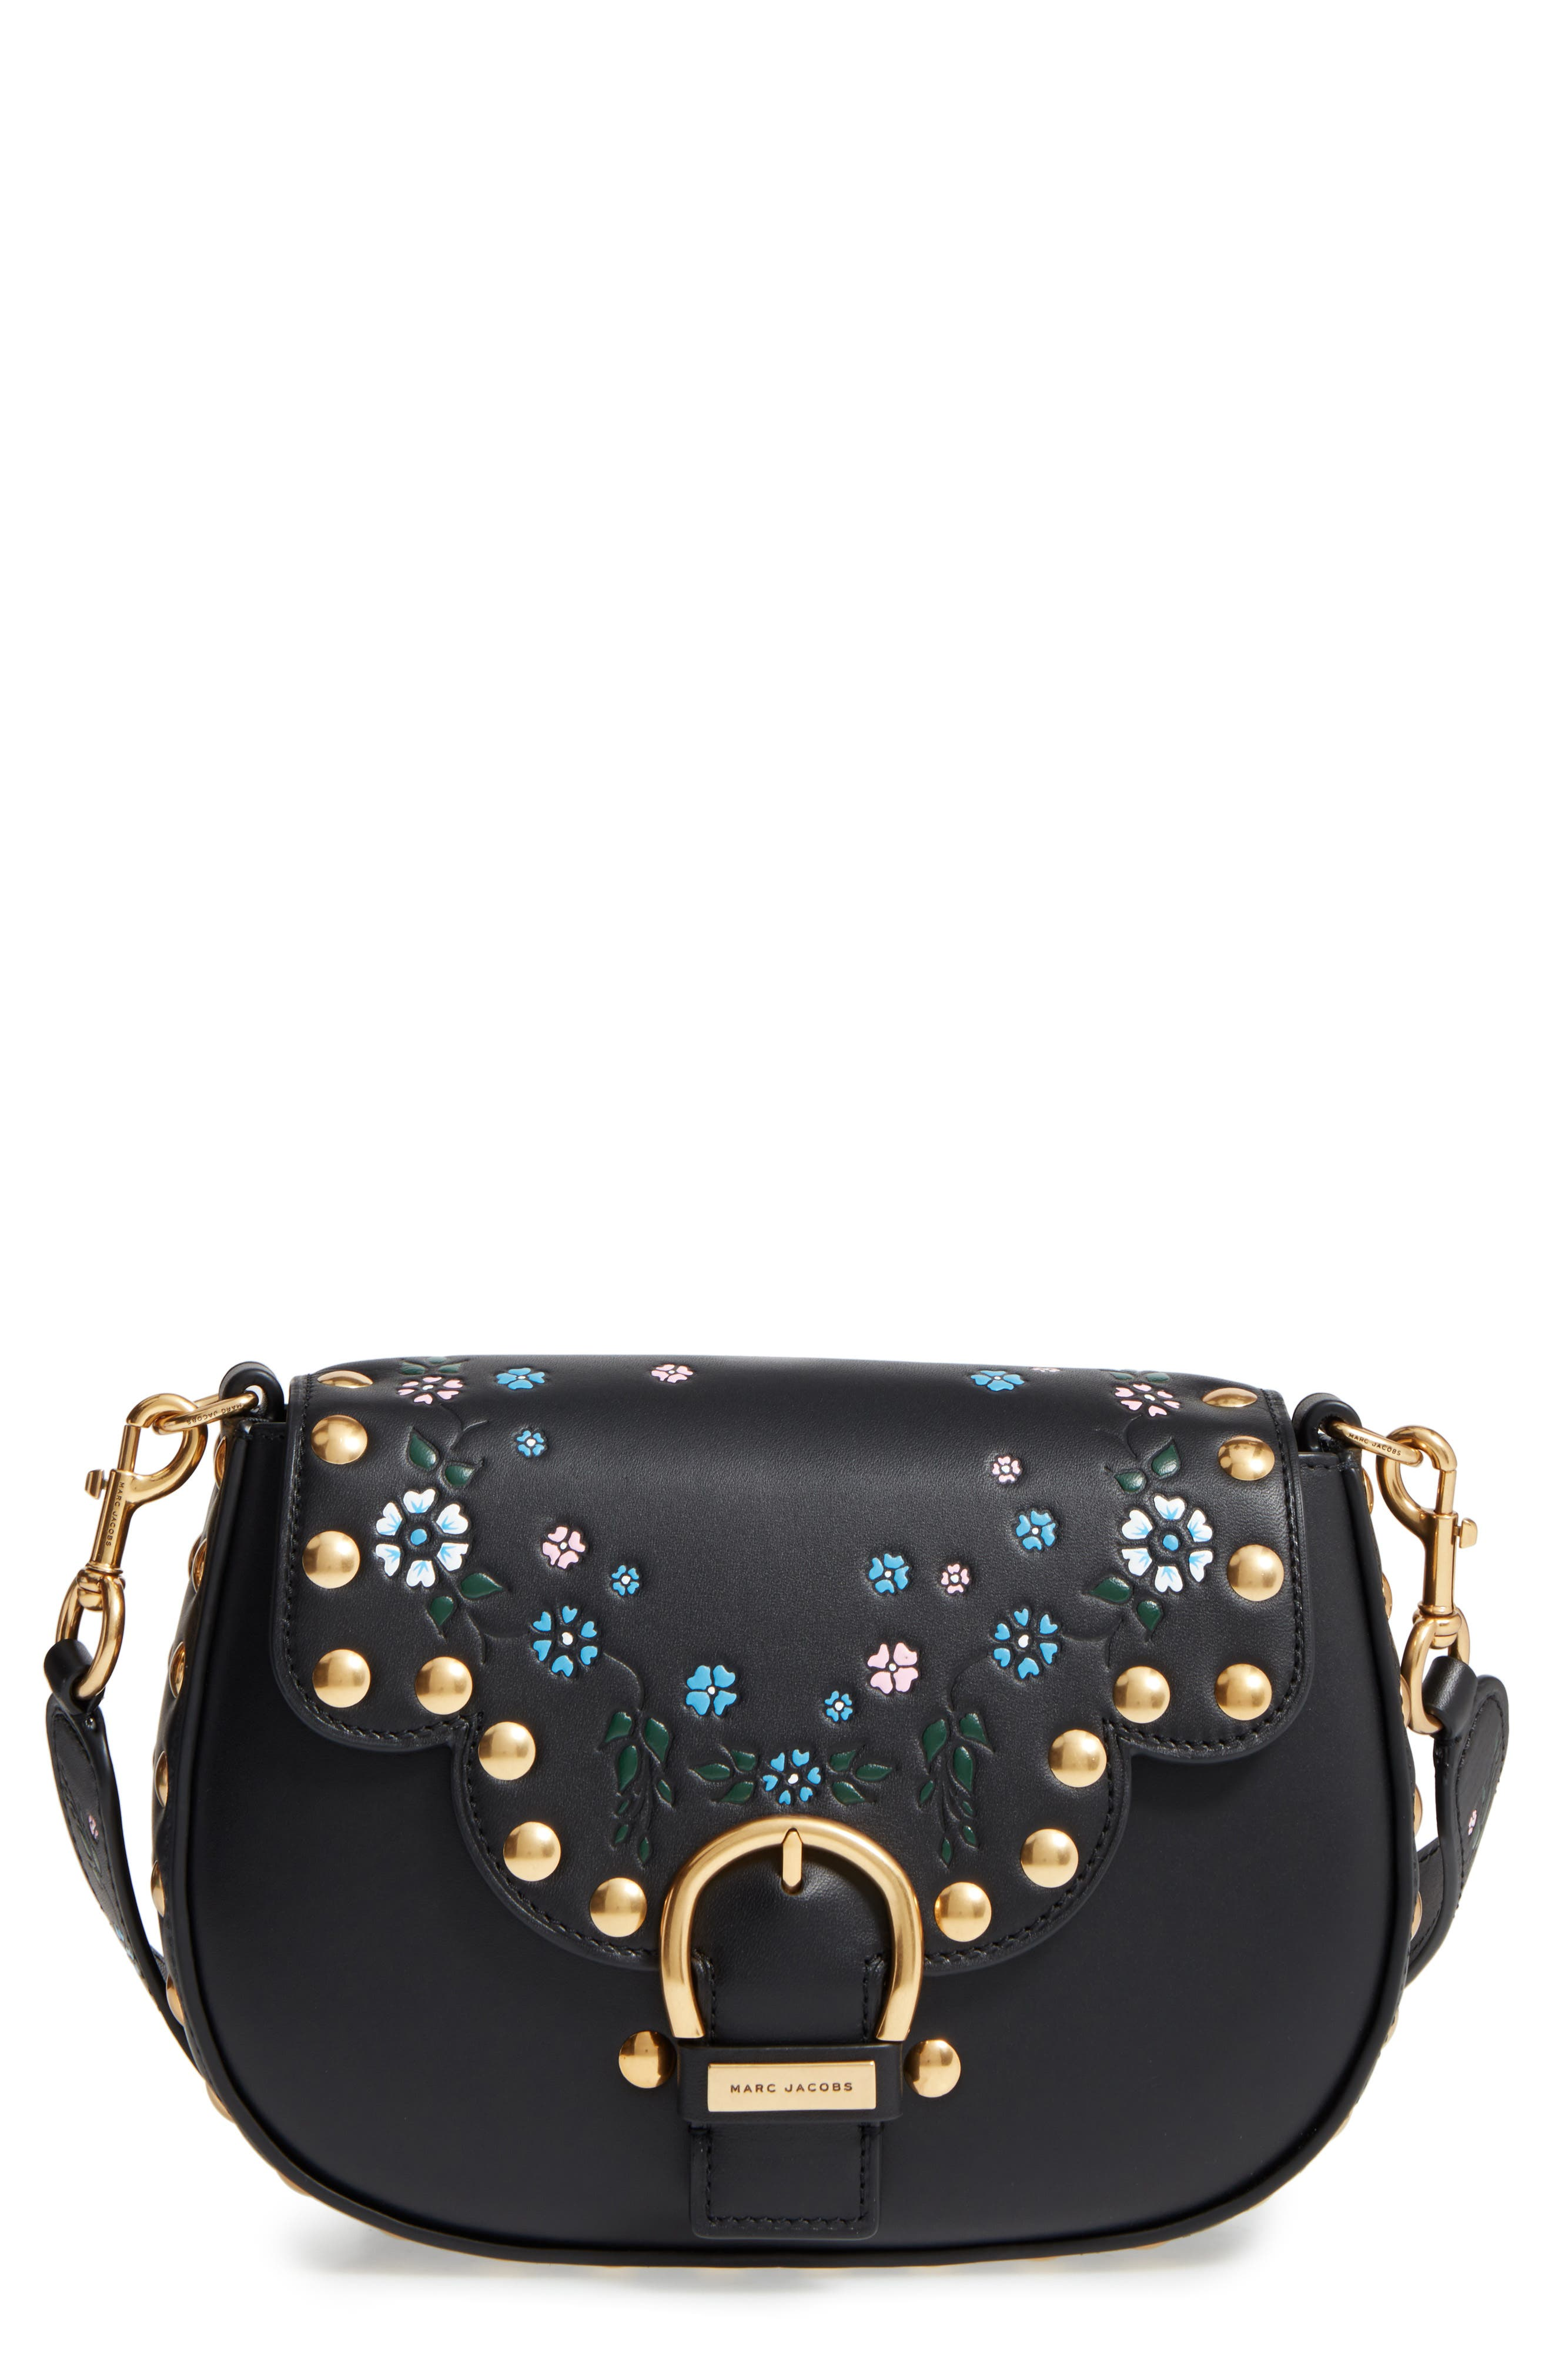 Alternate Image 1 Selected - MARC JACOBS Studded Navigator Leather Crossbody Bag